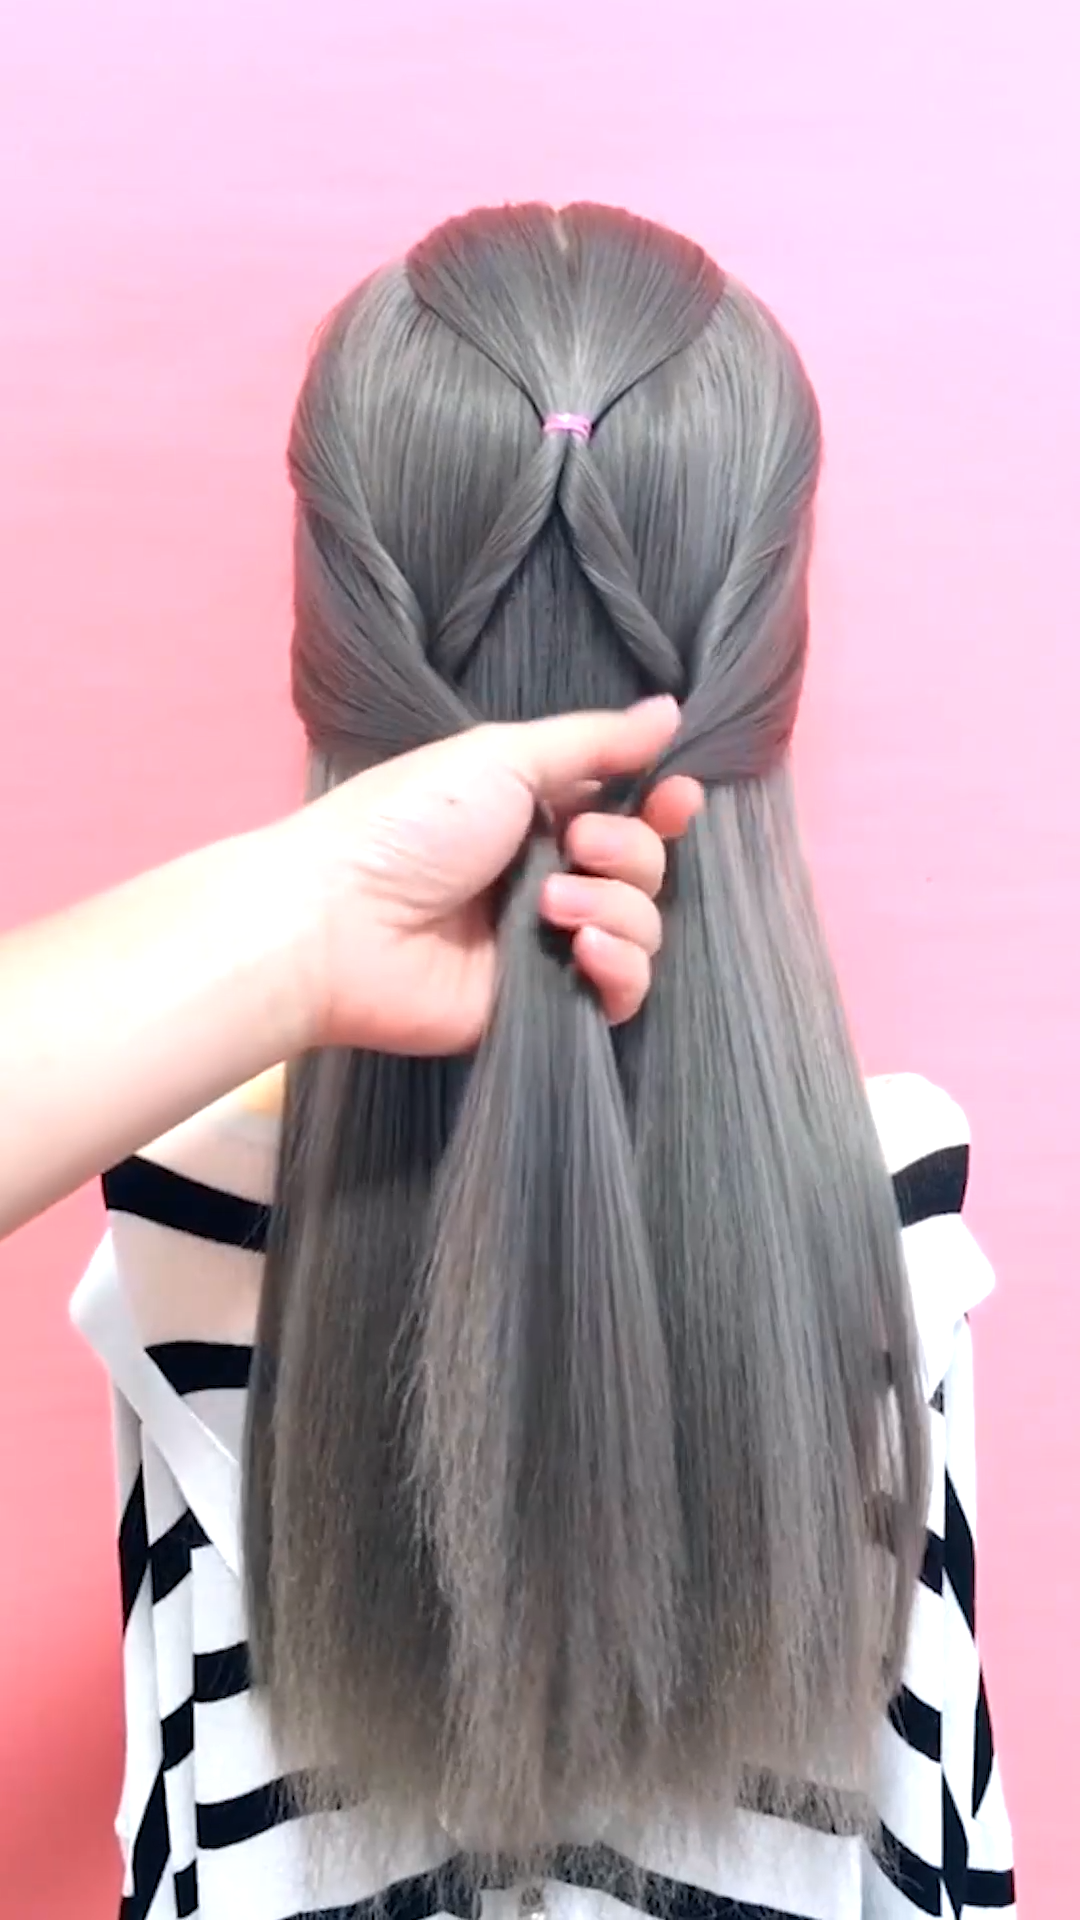 Hairstyle Tutorials For Long Hair New Hairstyle Videos 2019 Easy Quick Long Hairstyles Part 3 Wedding Hairstyles Videos Easy Hairstyle Video Hair Videos